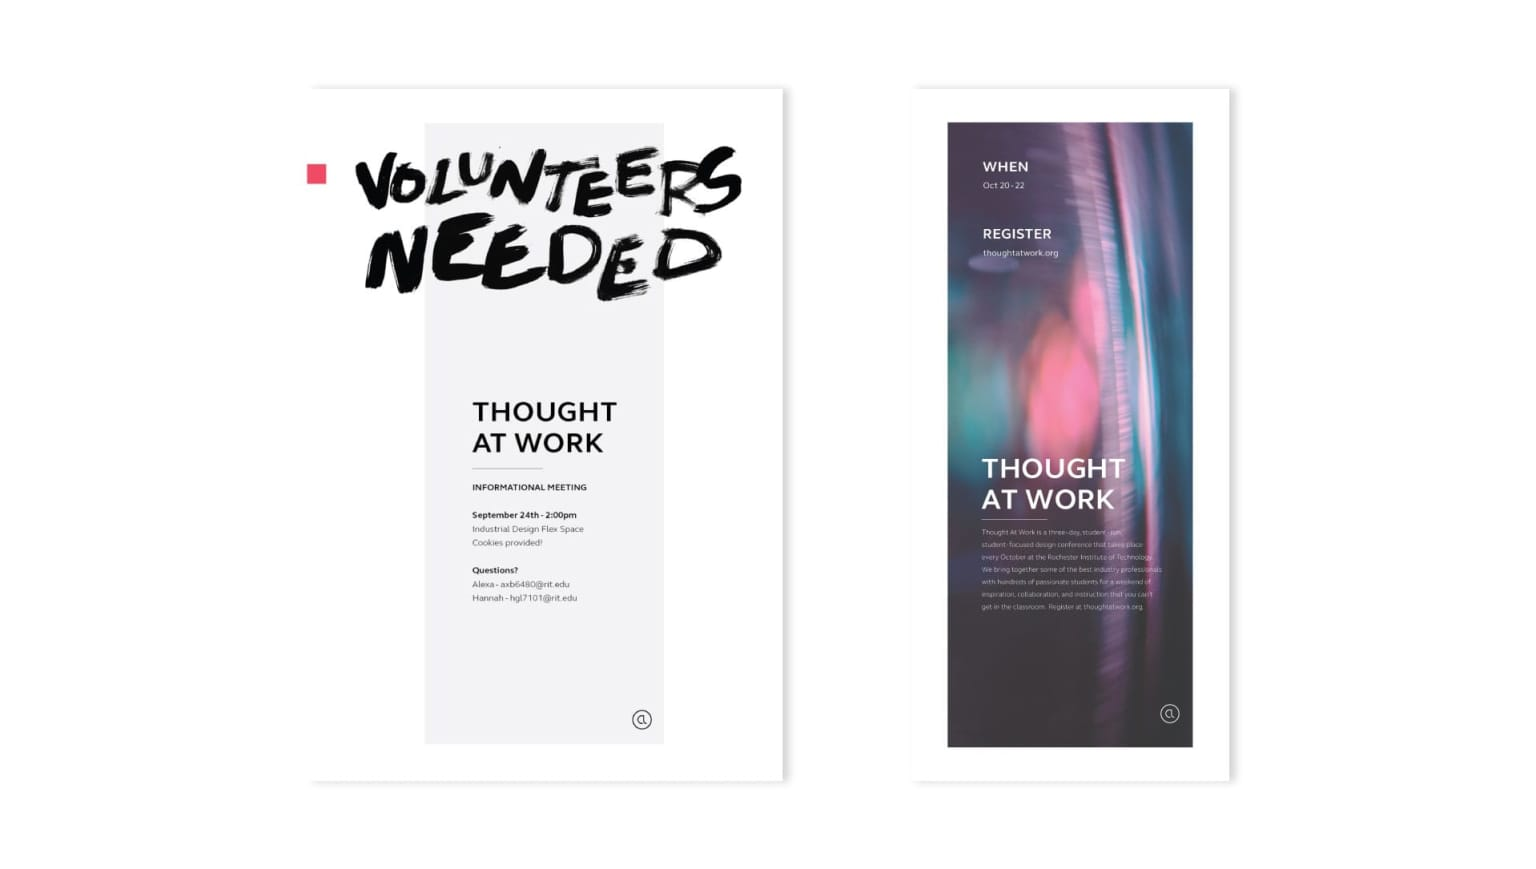 THOUGHT AT WORK — Design Conference